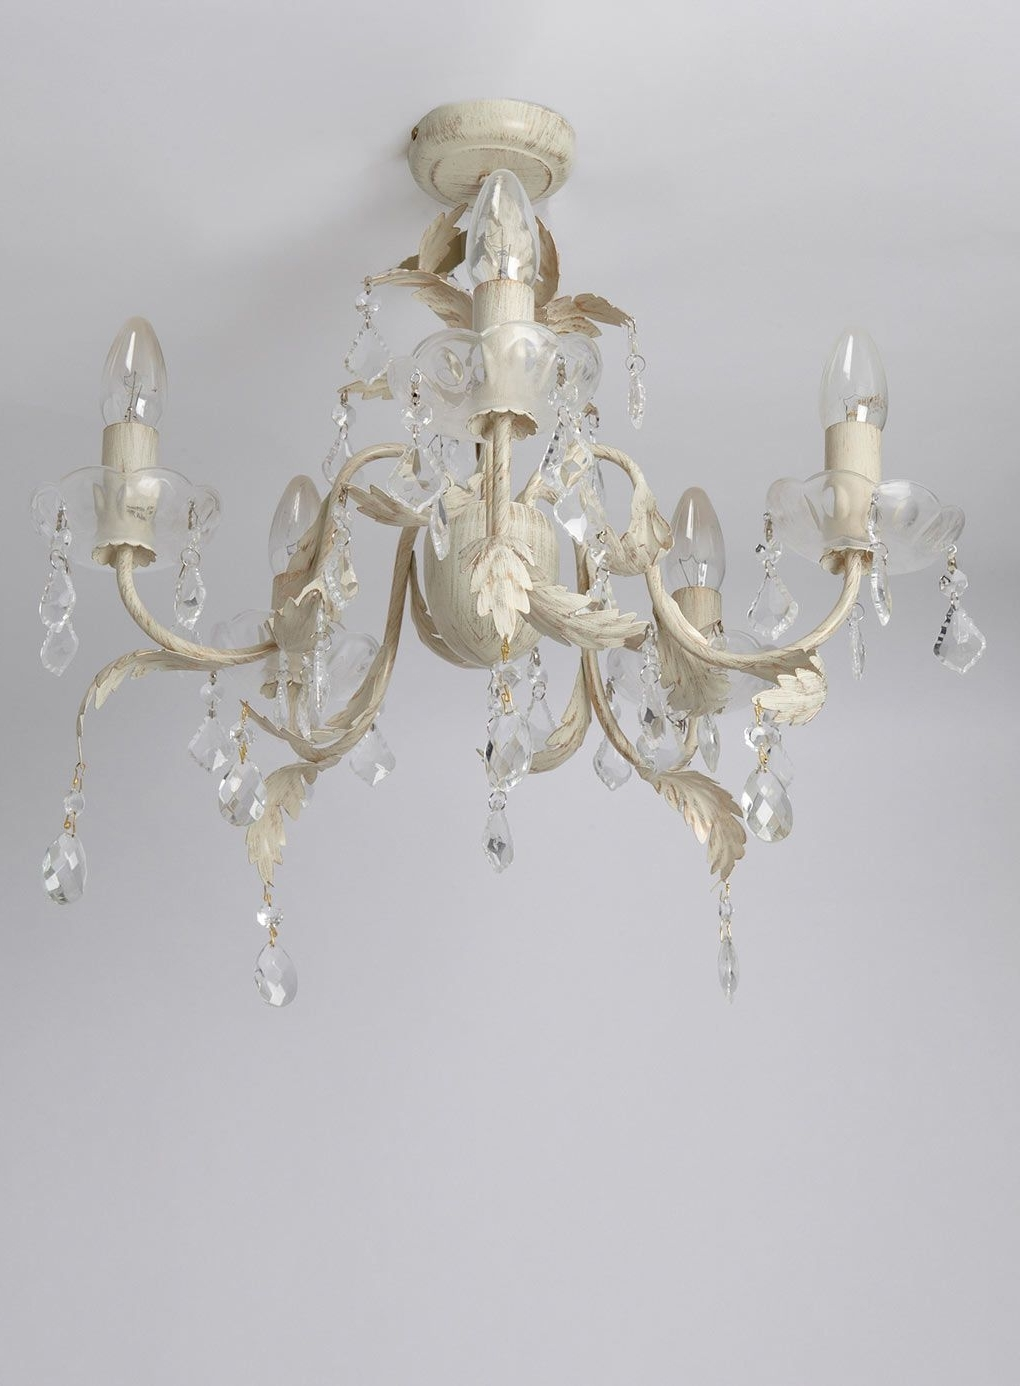 Flush Fitting Chandeliers Intended For Most Recently Released Juliette 5 Light Flush Fitting Chandelier – Ceiling Lights – Home (View 13 of 15)